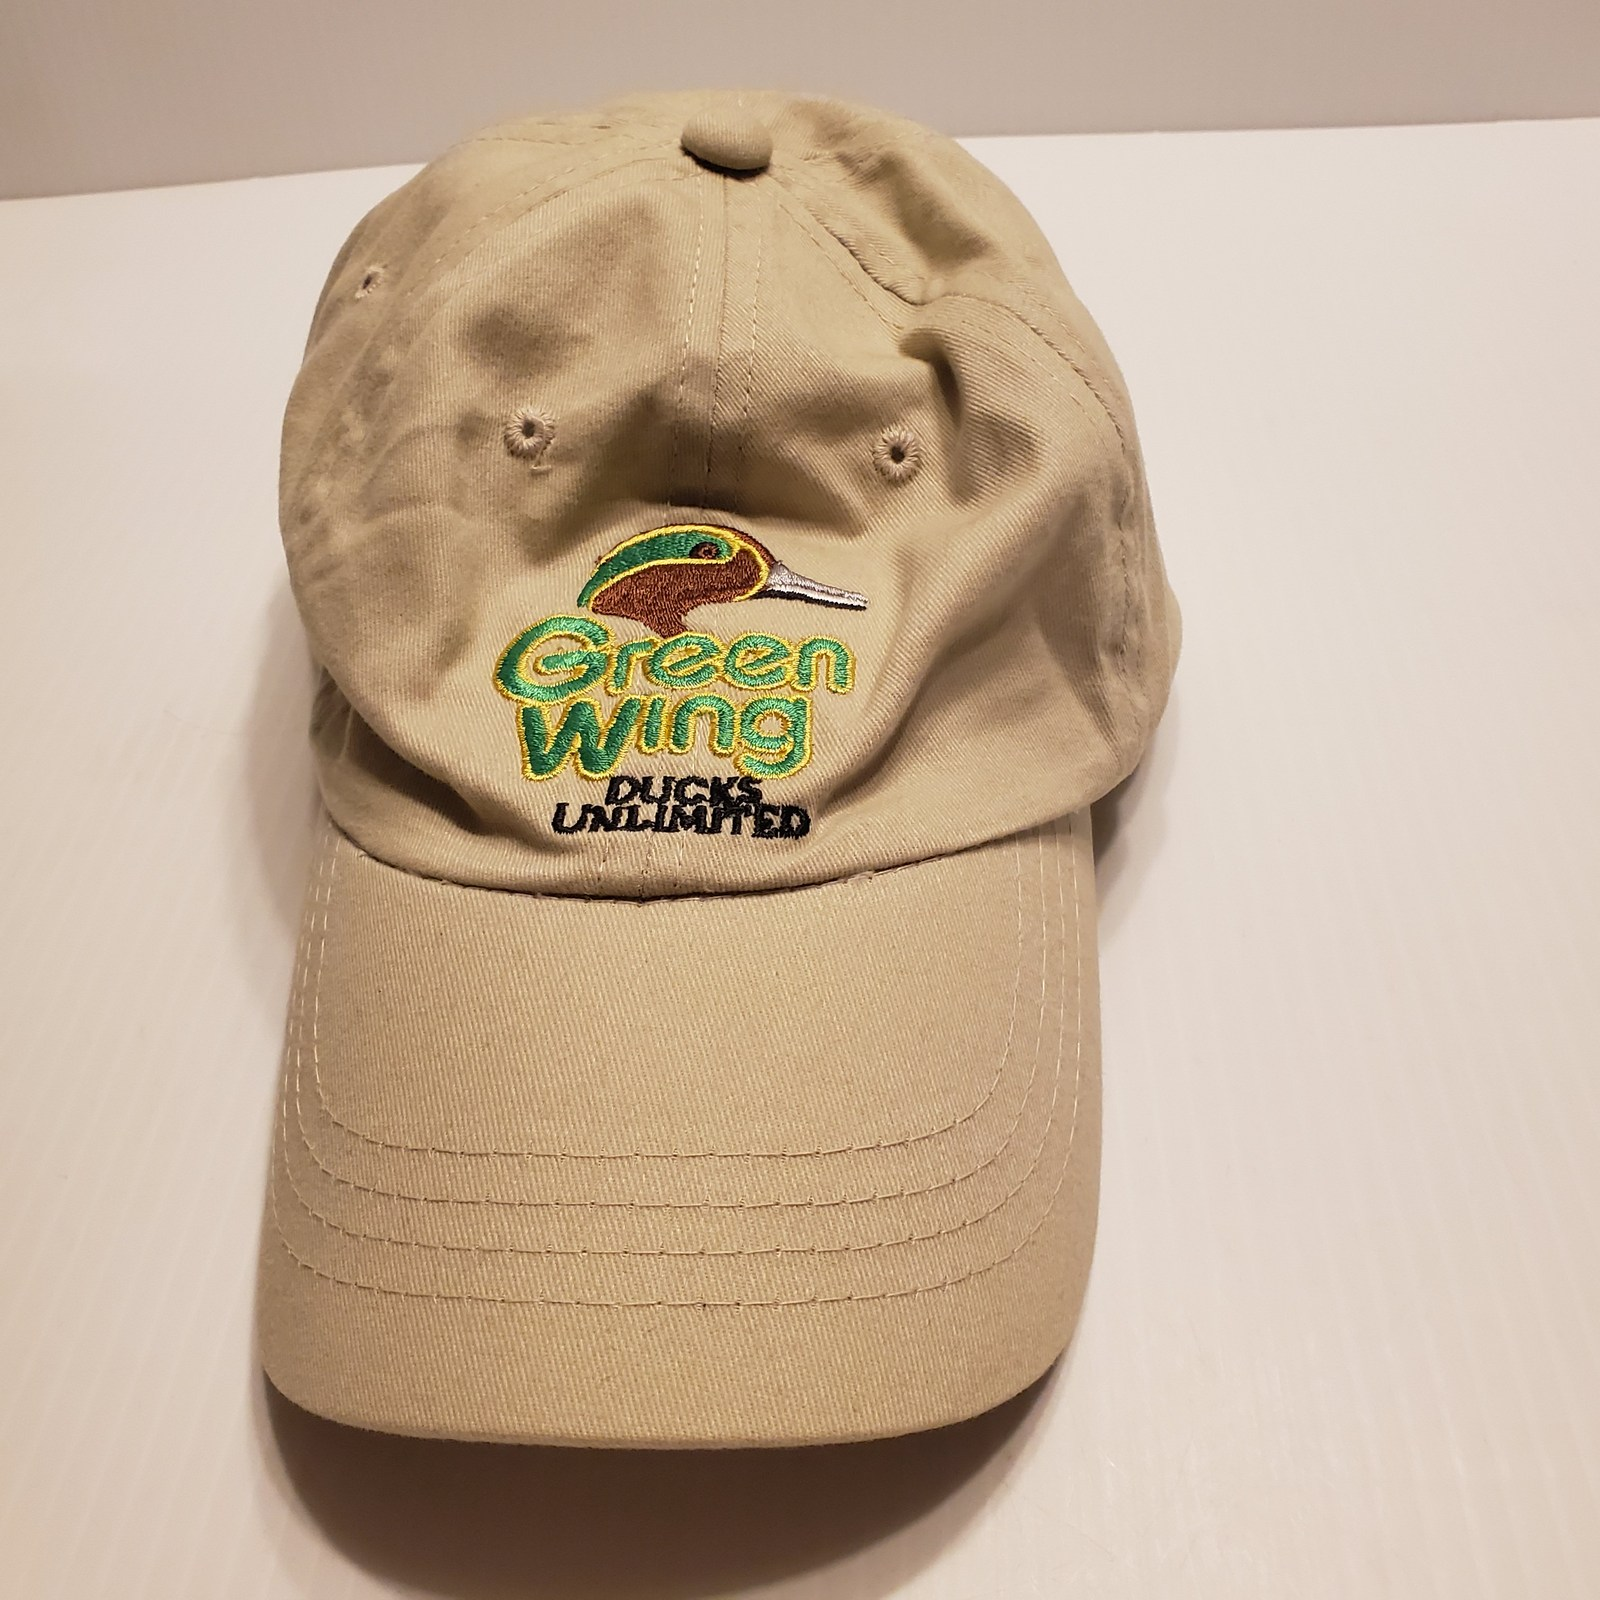 Green Wing Ducks Unlimited Adjustable Hat One Size Fits Most. Dorfman Pacific.   image 8